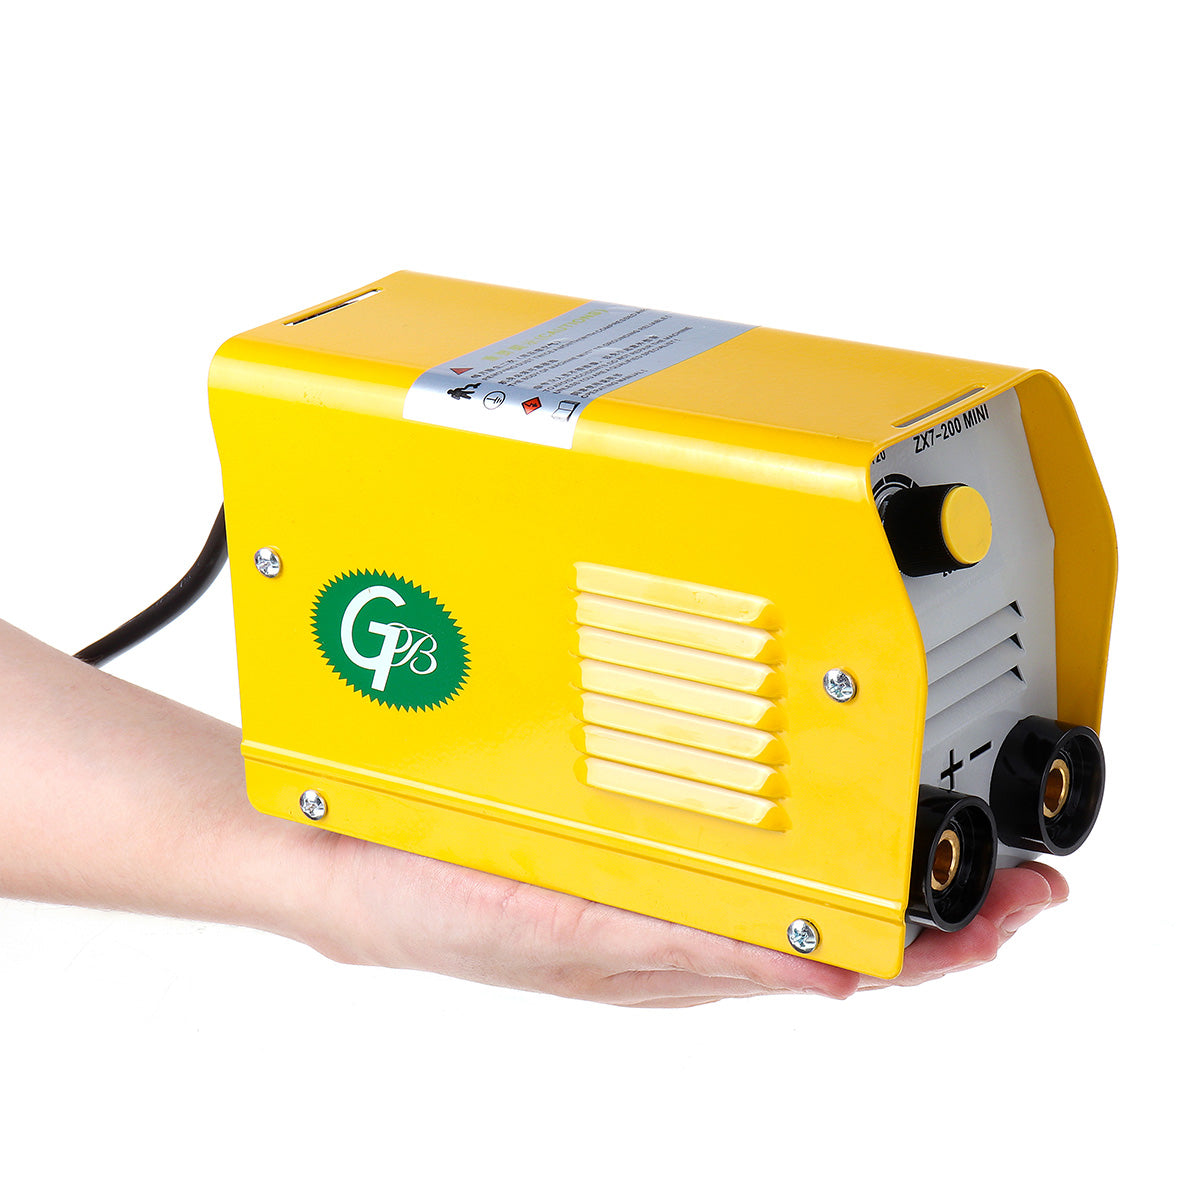 cozyrex,miniGB ZX7-200 220V 200A Mini Electric Welding Machine IGBT DC Inverter ARC MMA Stick Welder 220V,CozyRex,